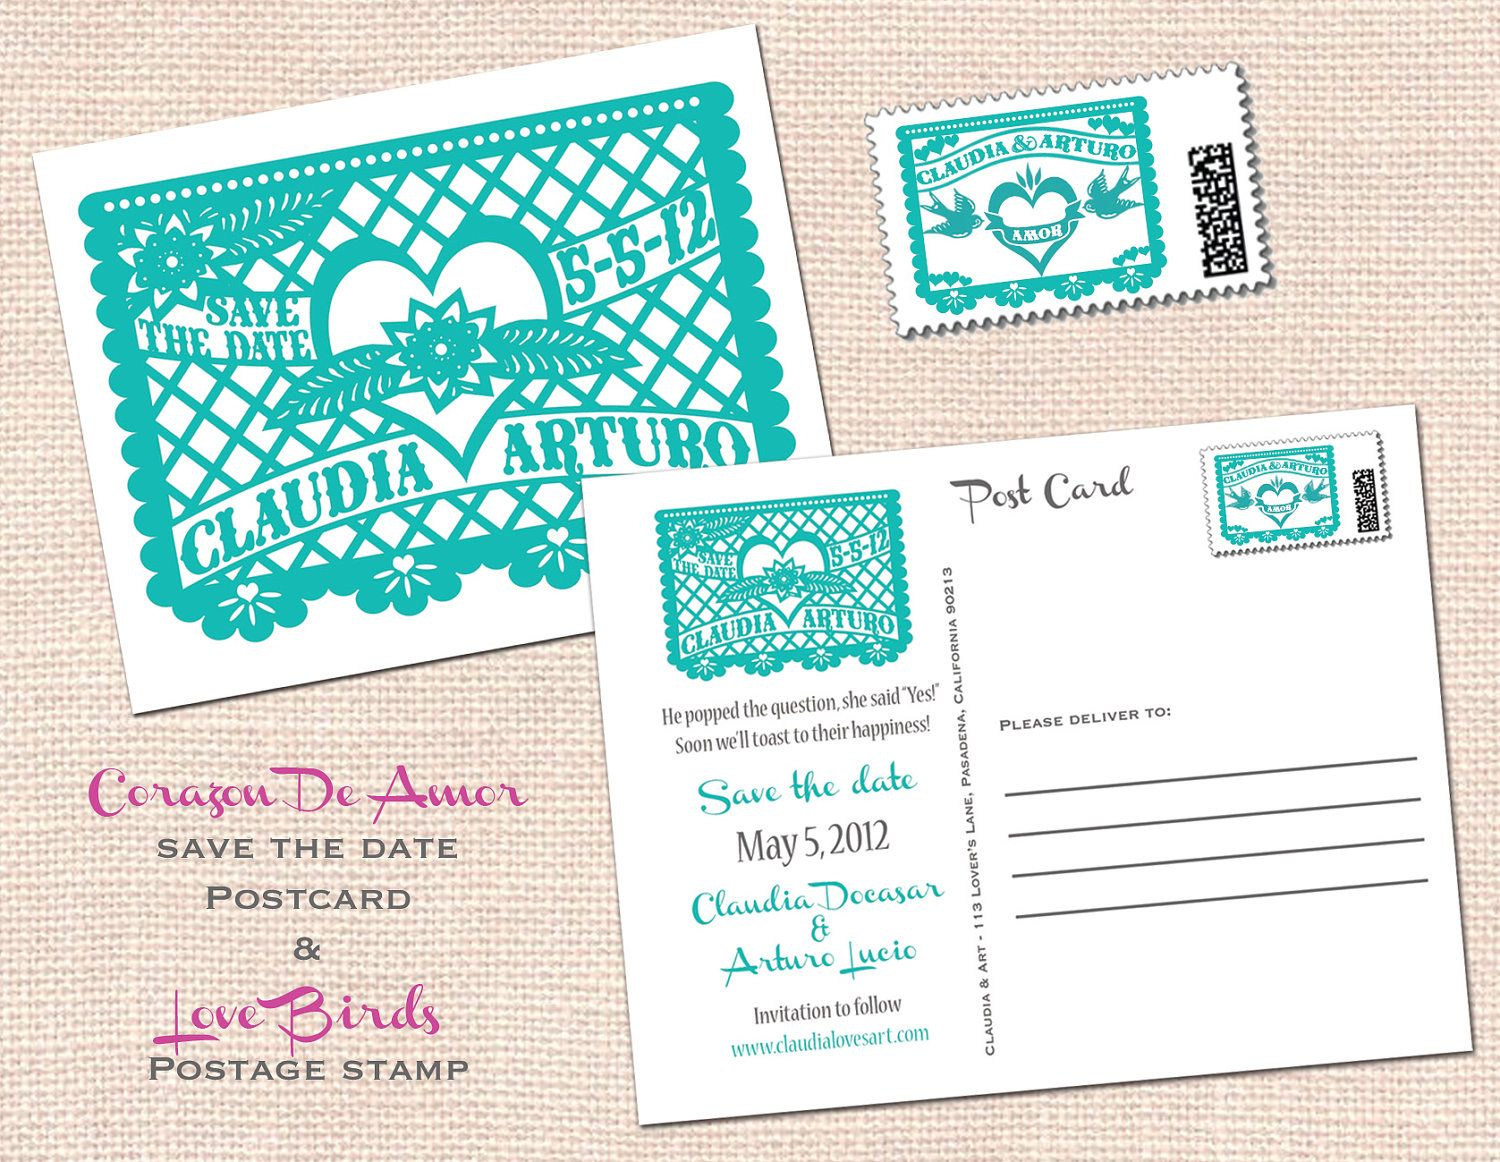 Corazon De Amor Save The Date Postcard Papel Picado Fiesta Wedding